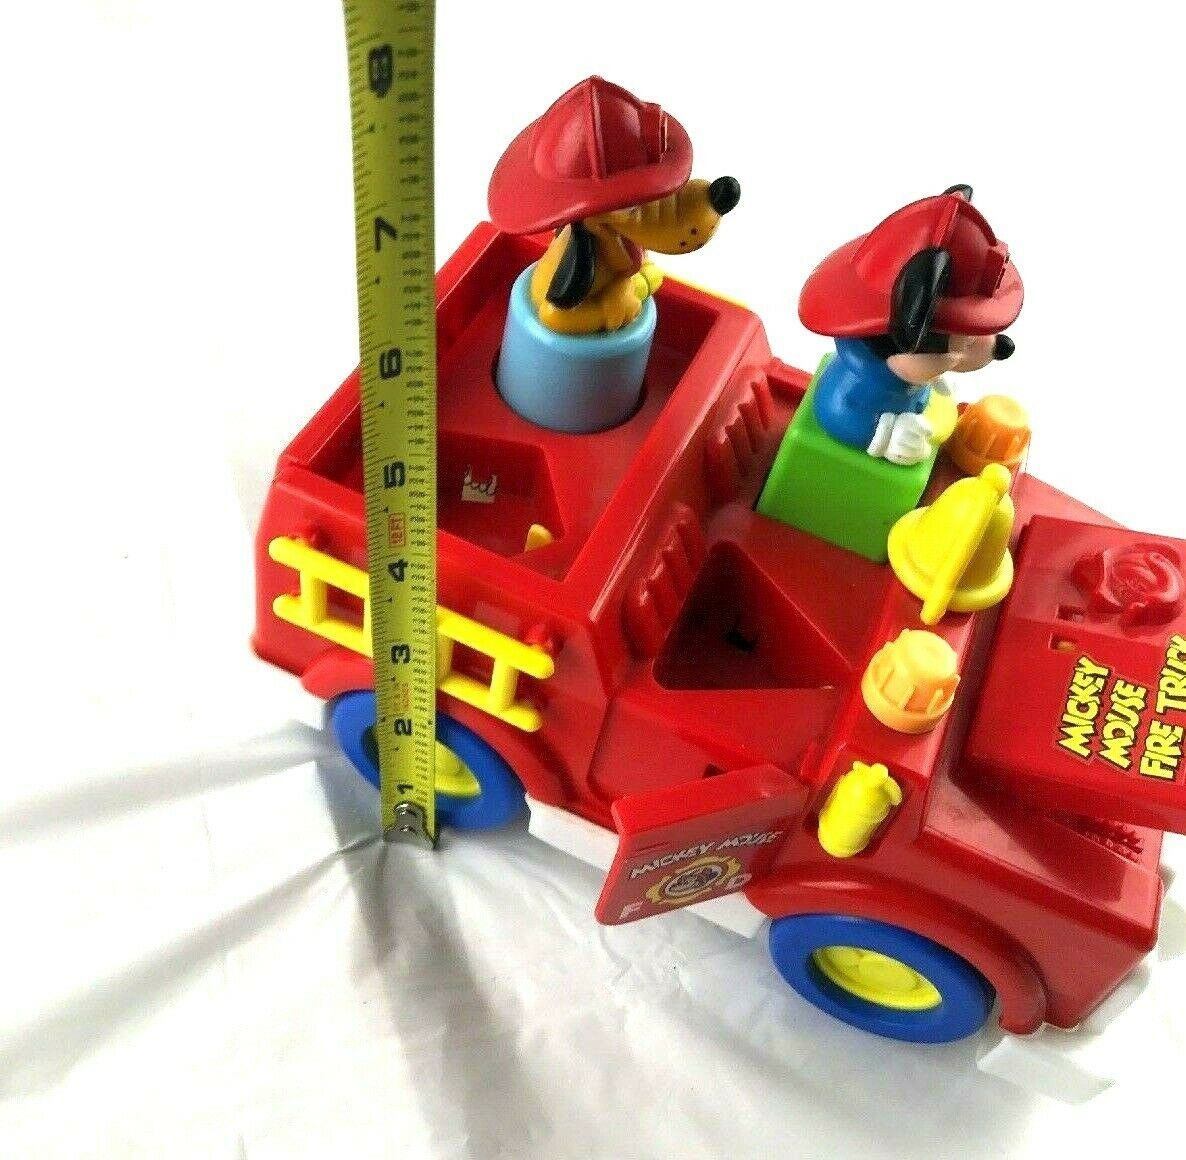 AS IS Vintage Mickey Mouse Fire Truck Toy